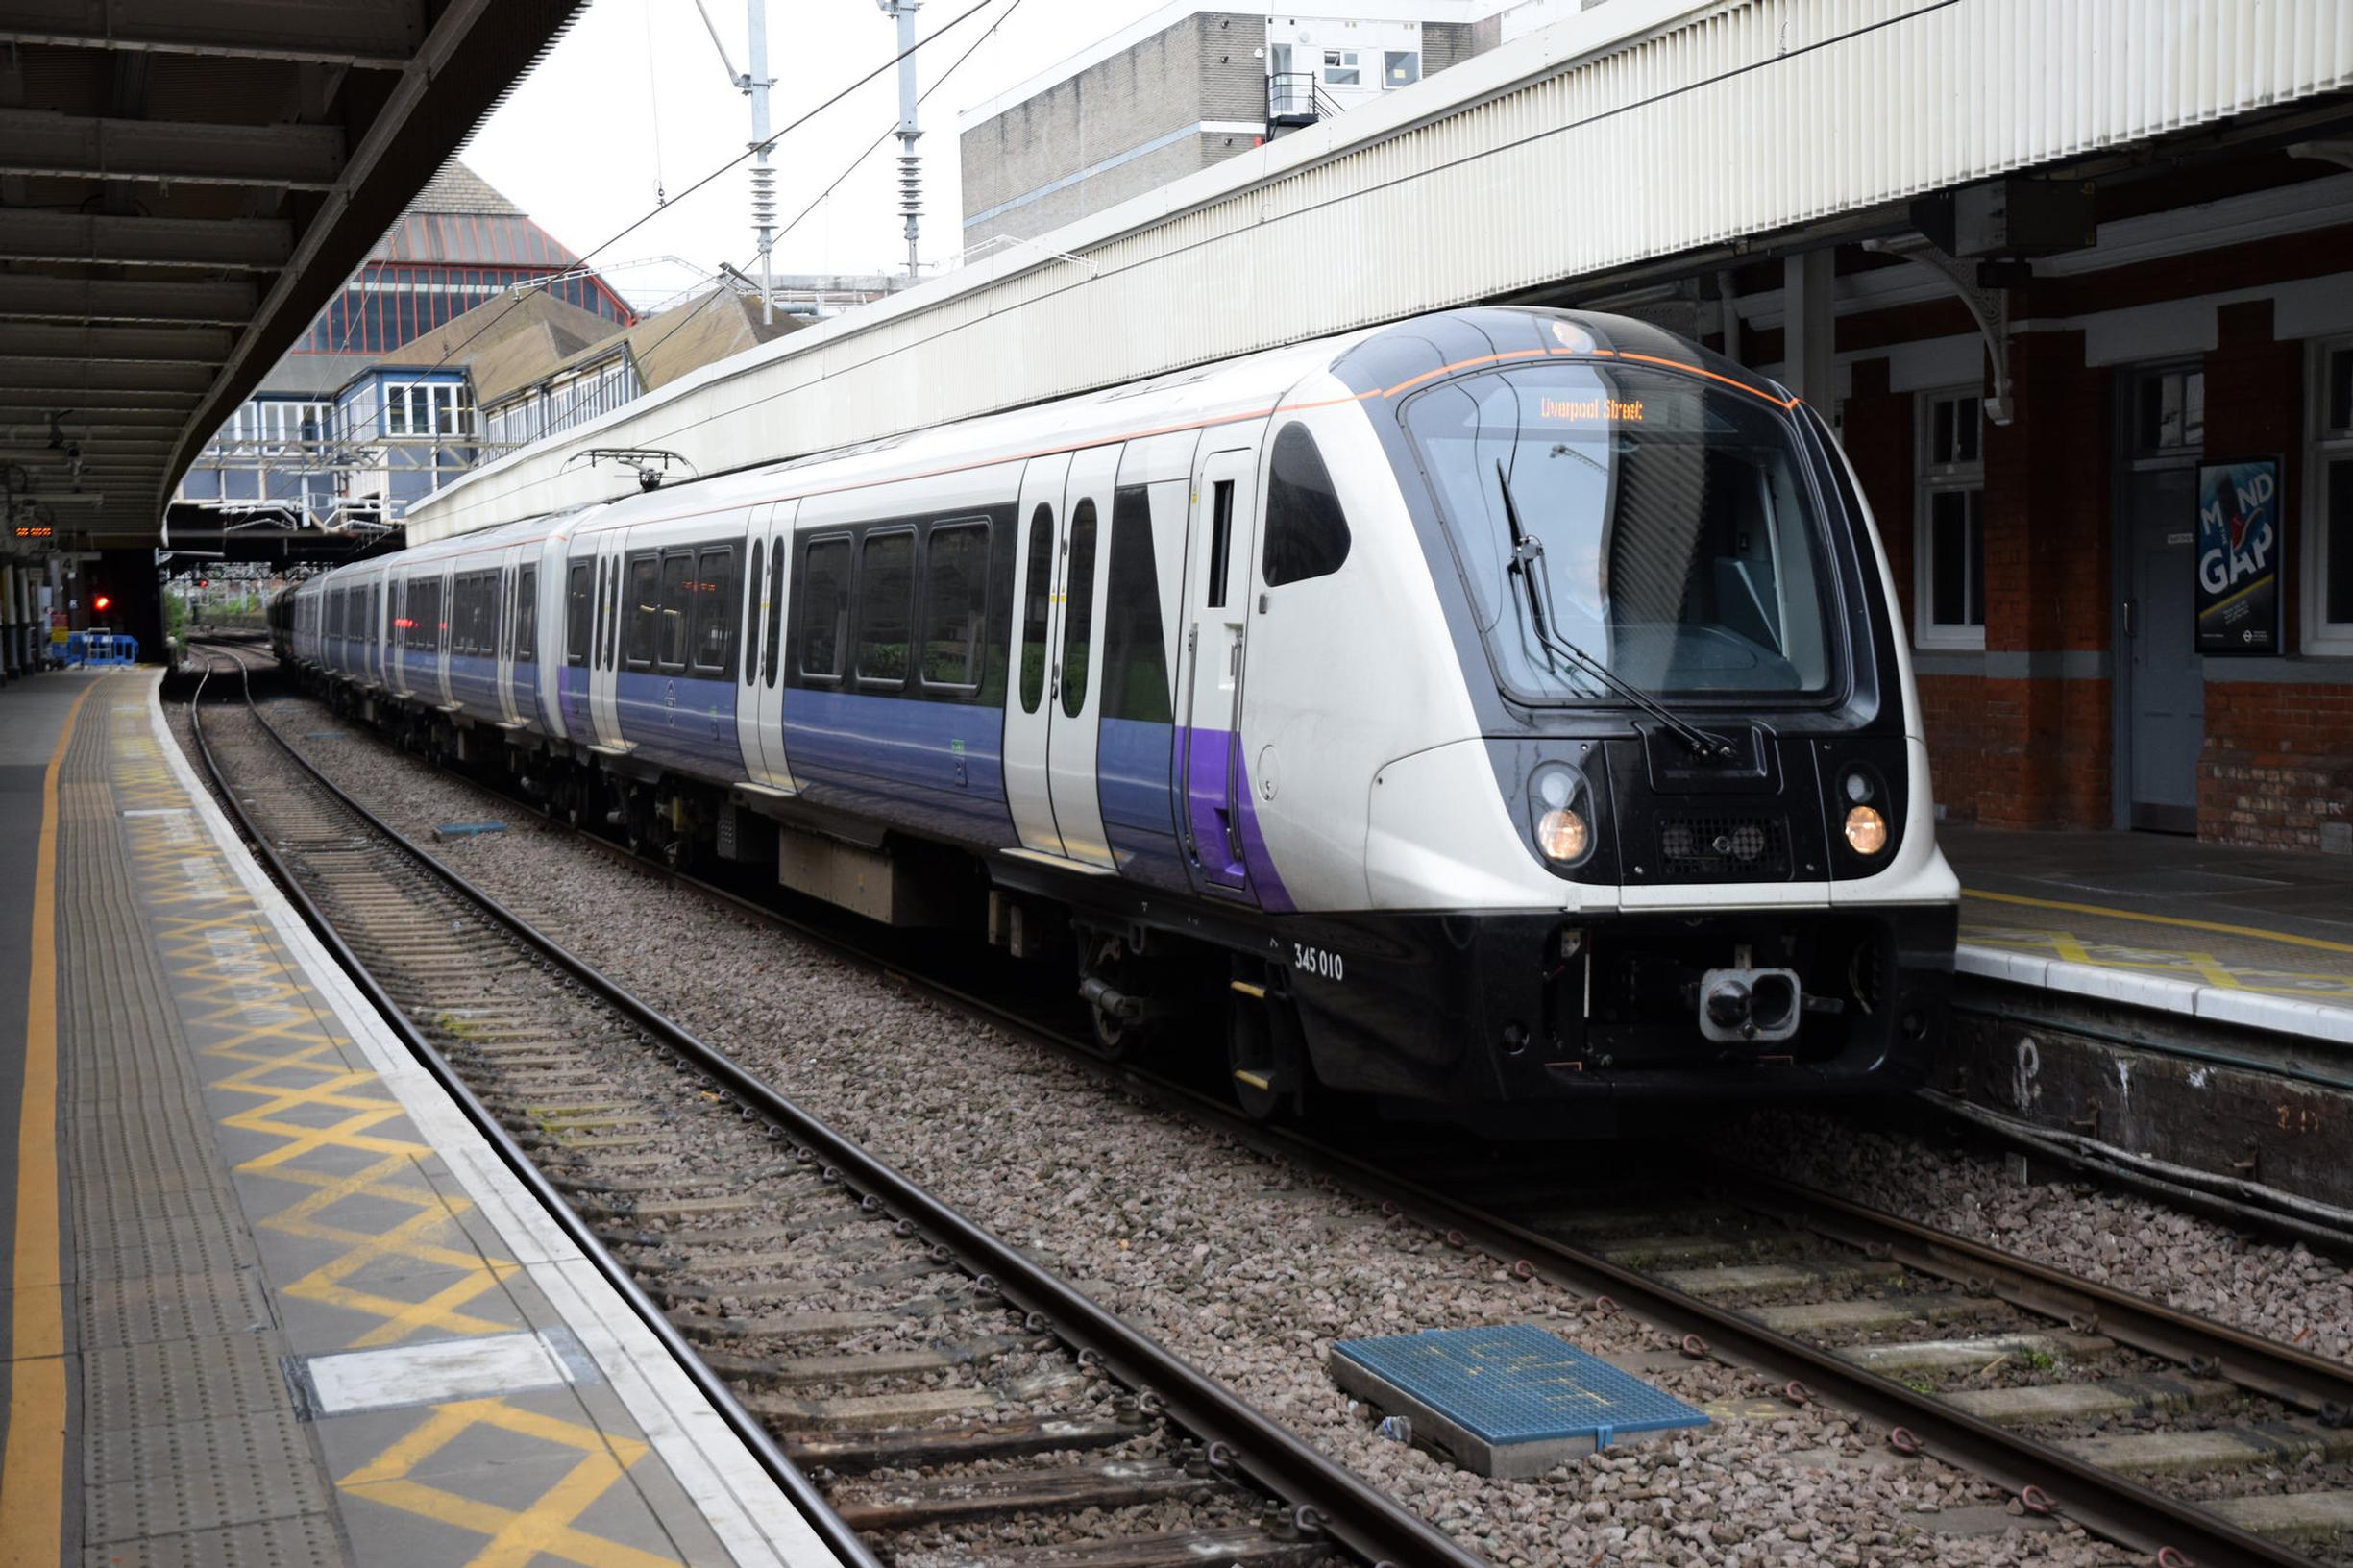 The opening of Crossrail (the Elizabeth Line) could provide a useful case study for understanding people's value of time, say ITS and Arup